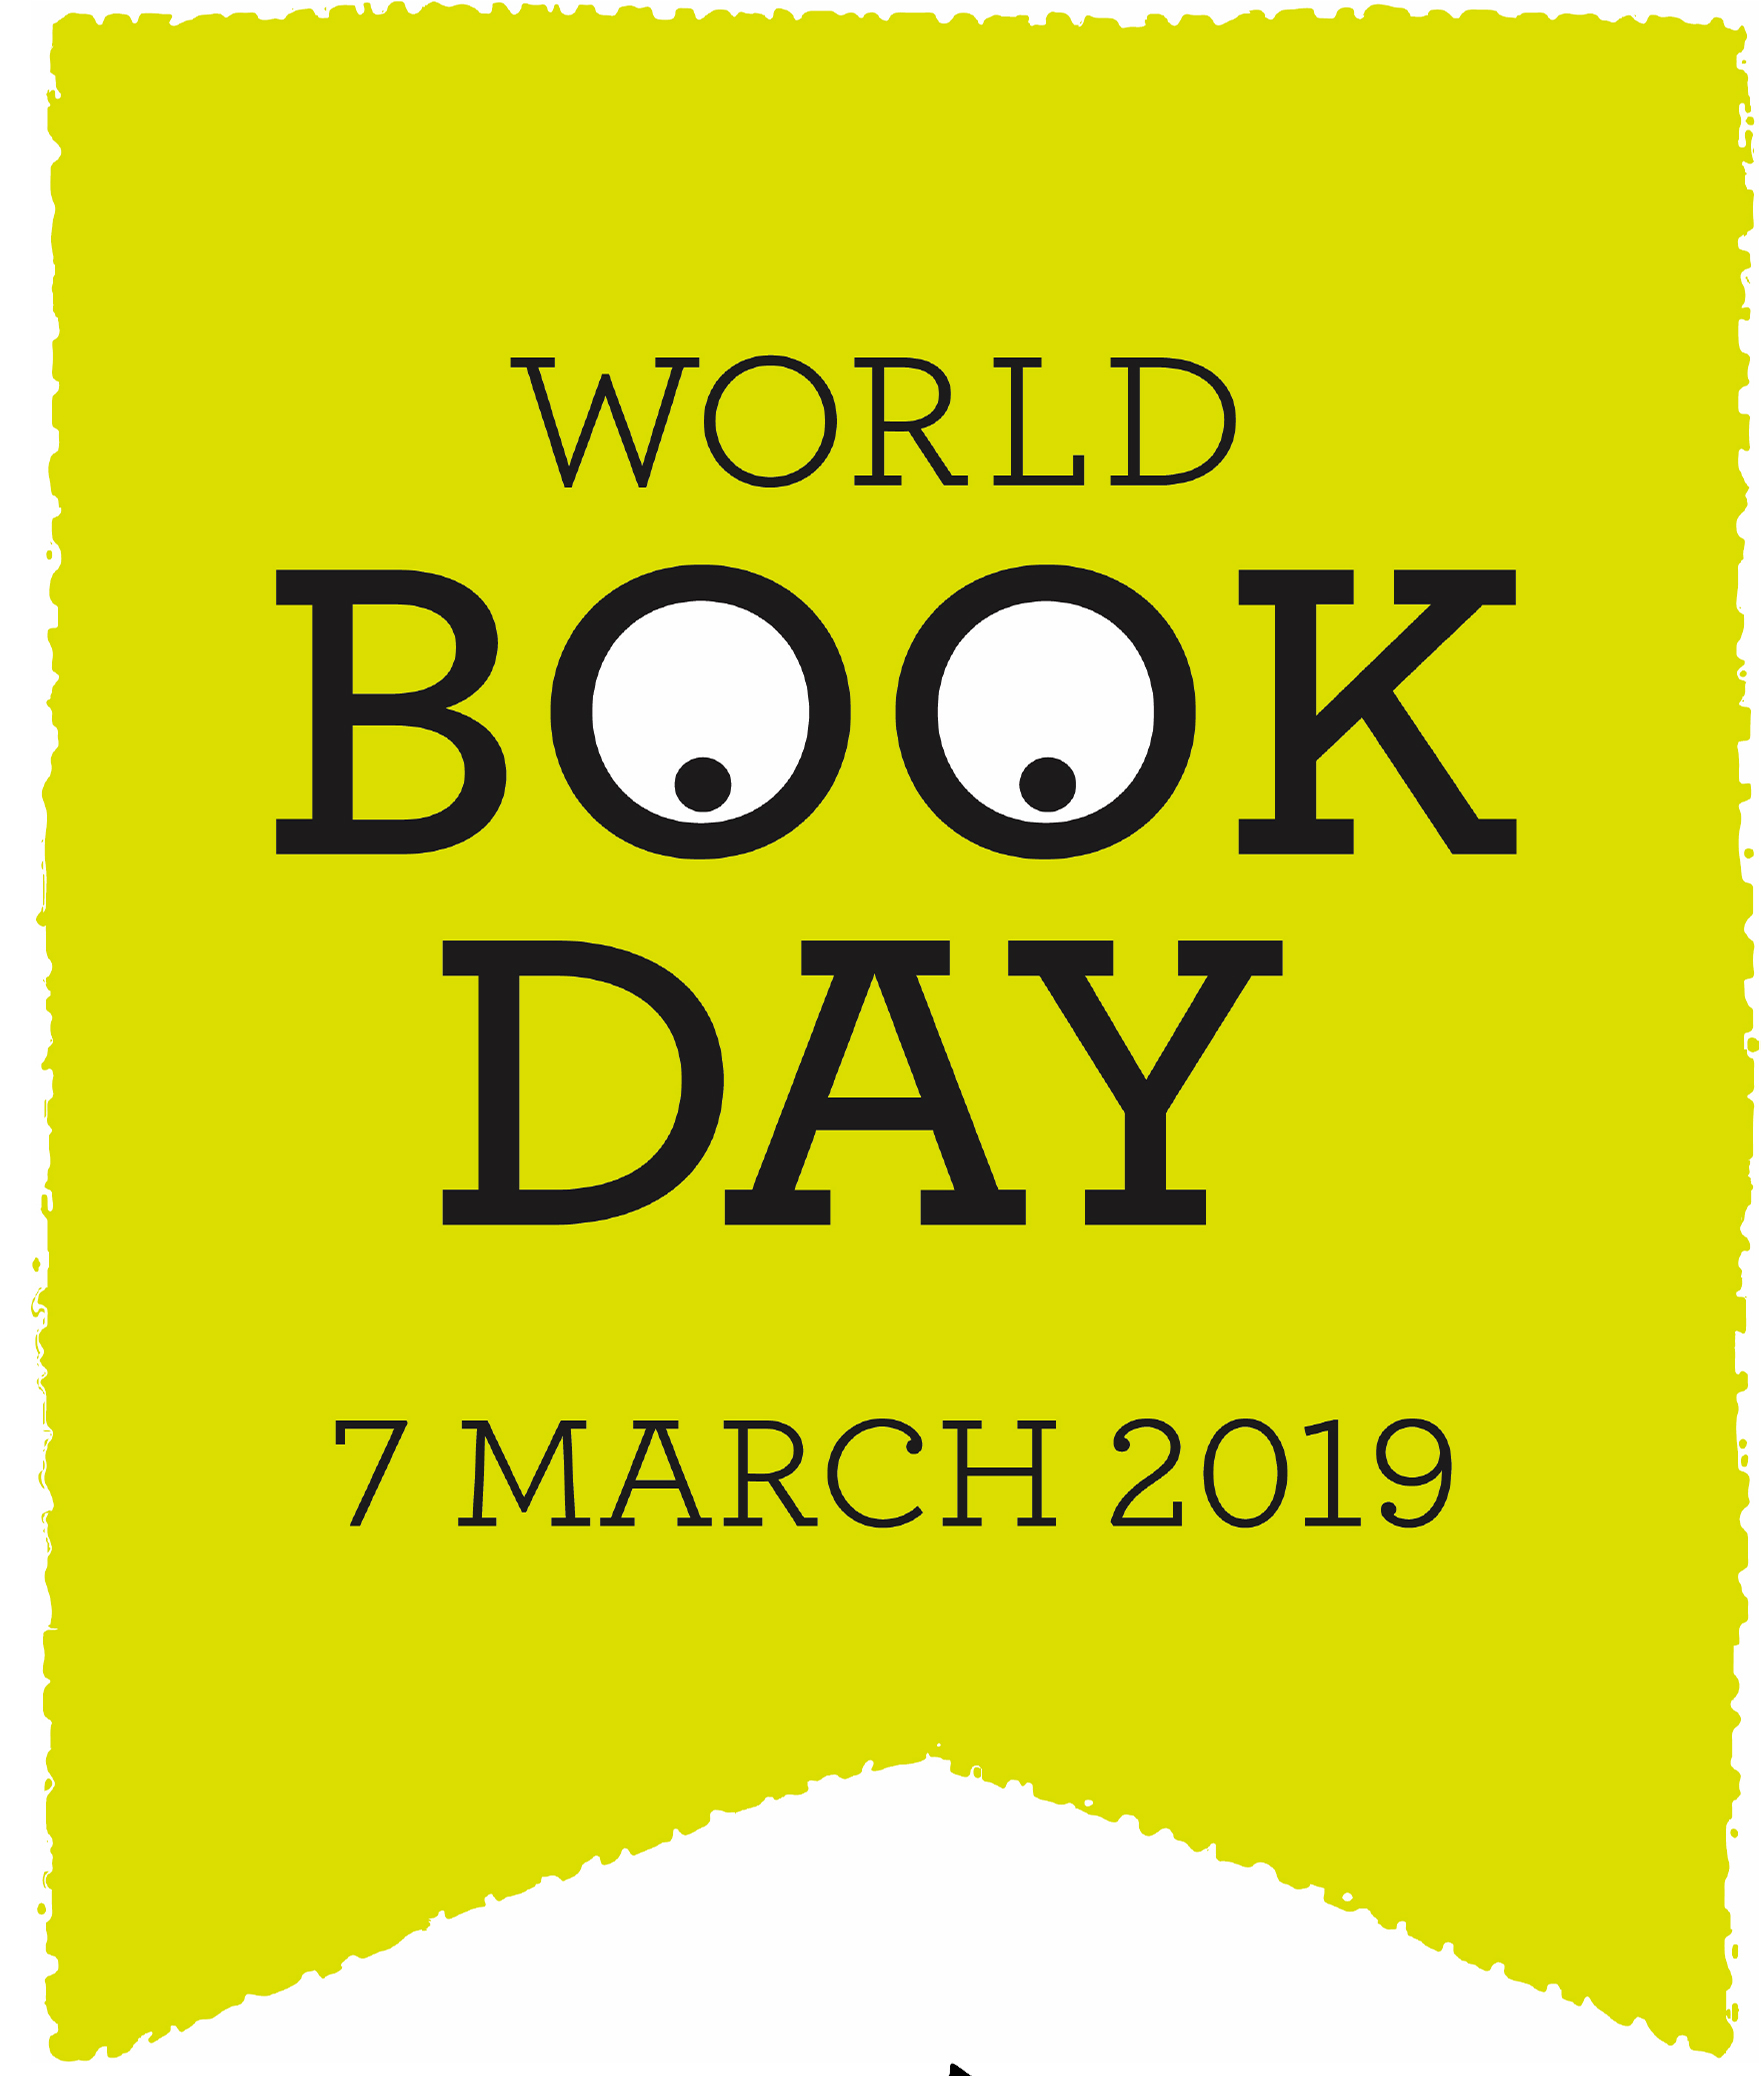 world-book-day-march